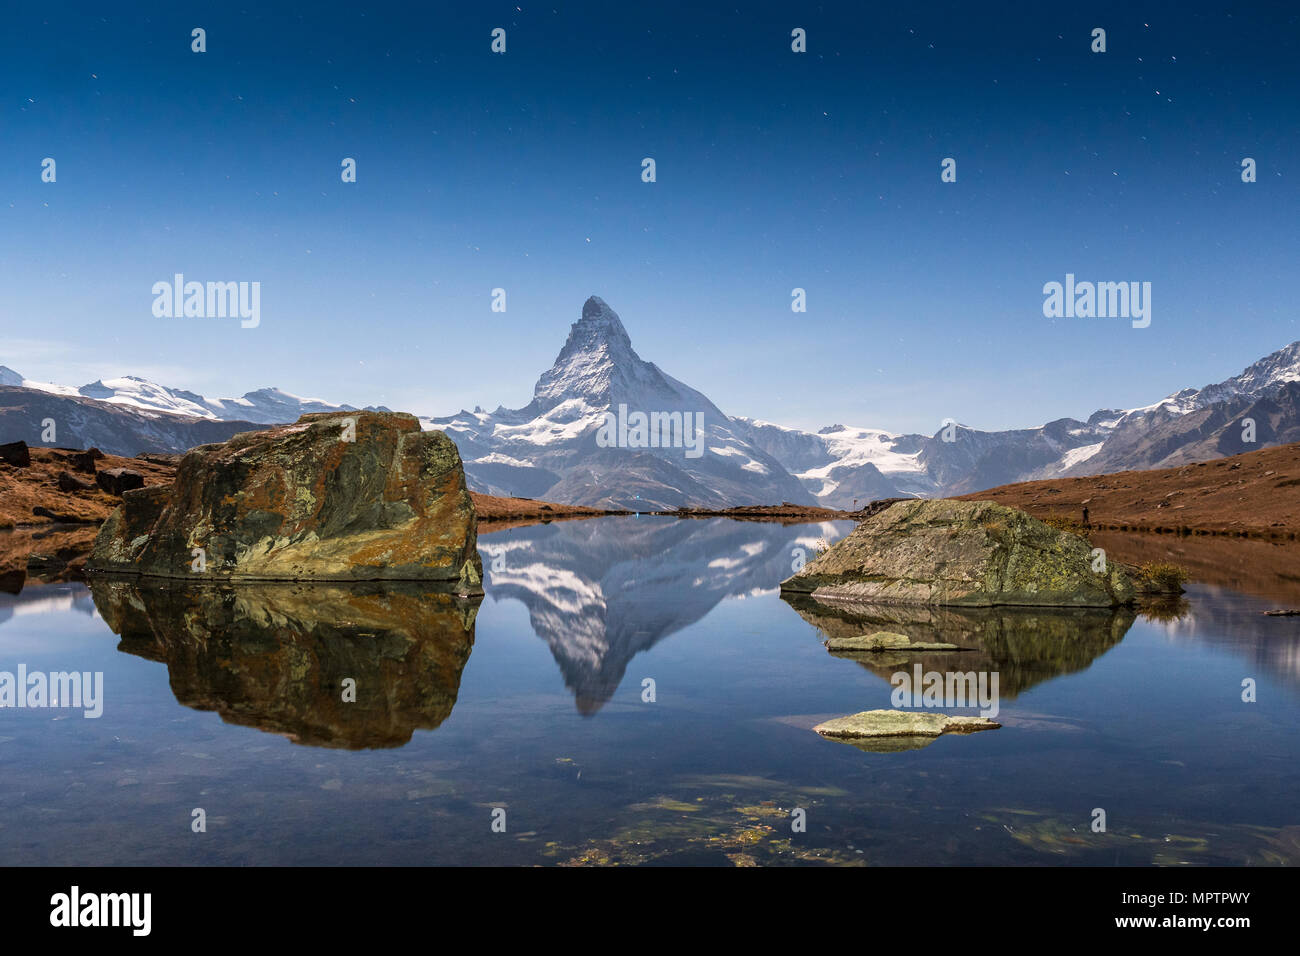 sunset at Matterhorn with reflection in Stellilake in the late afternoon - Stock Image